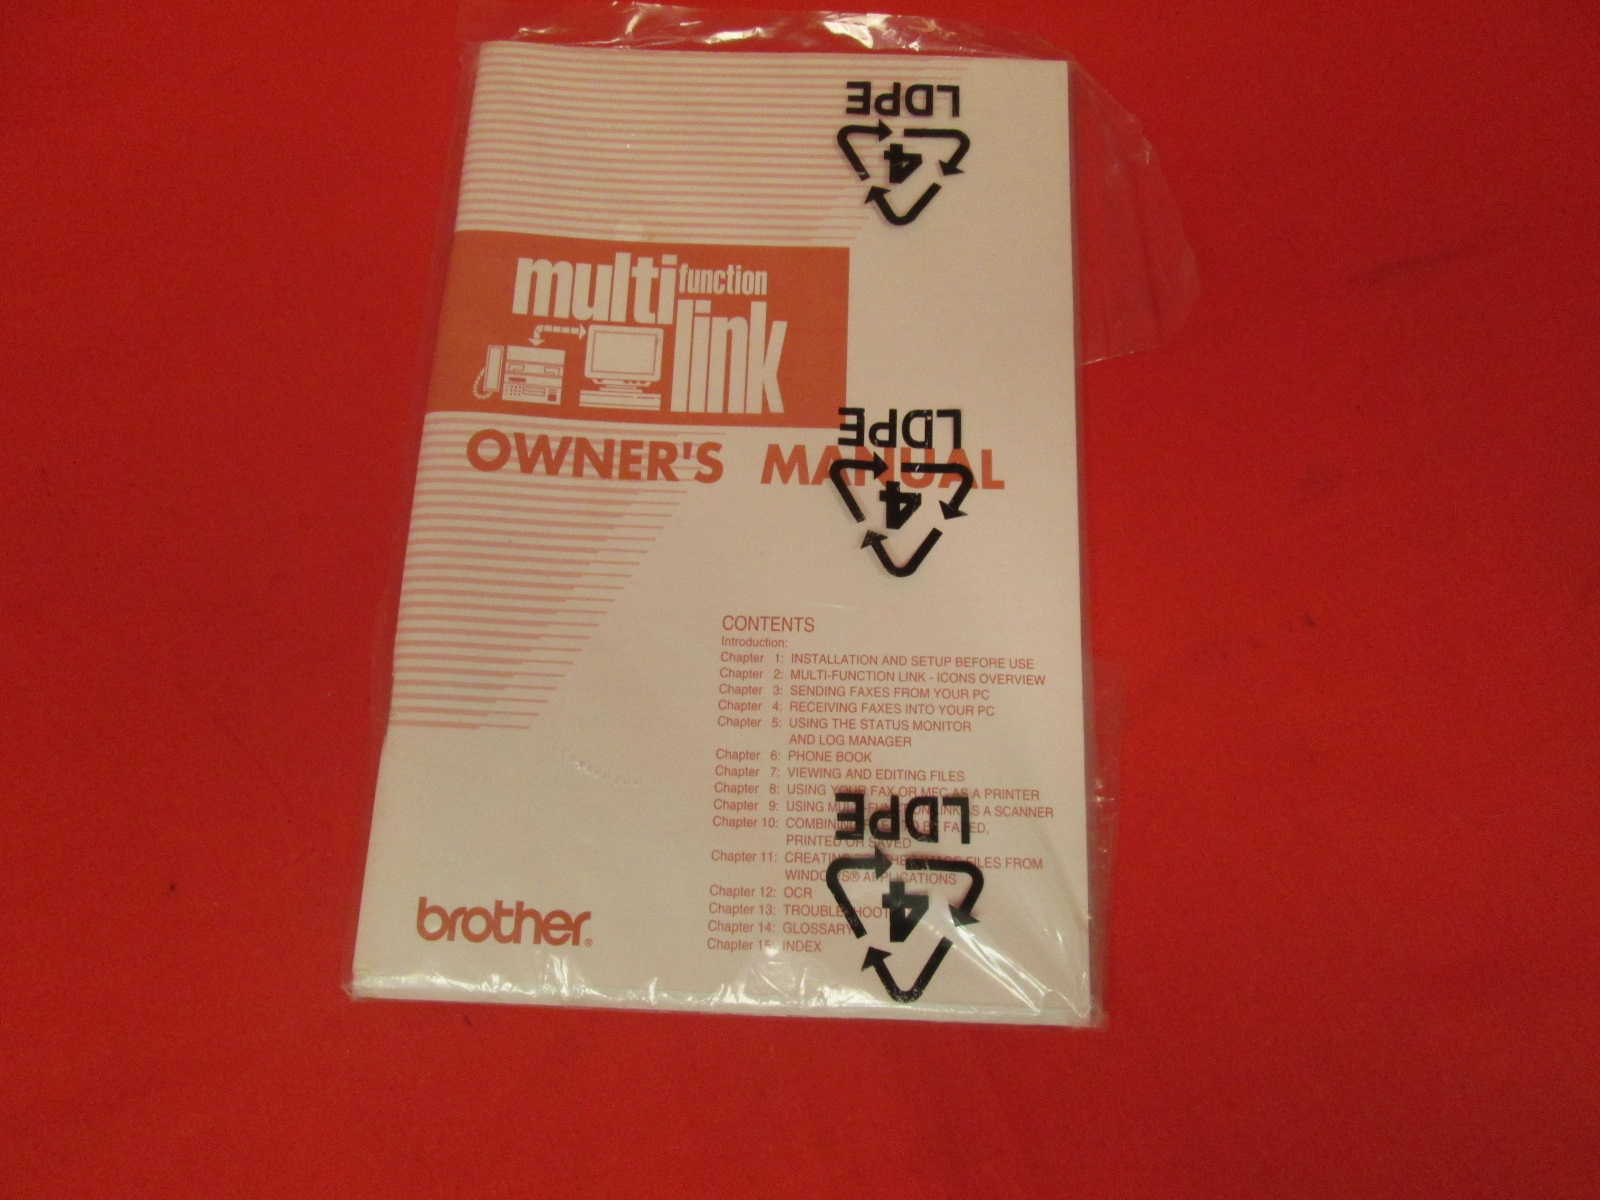 Replacement Owner's For Brother Multi Function Multi Link UF6571-001